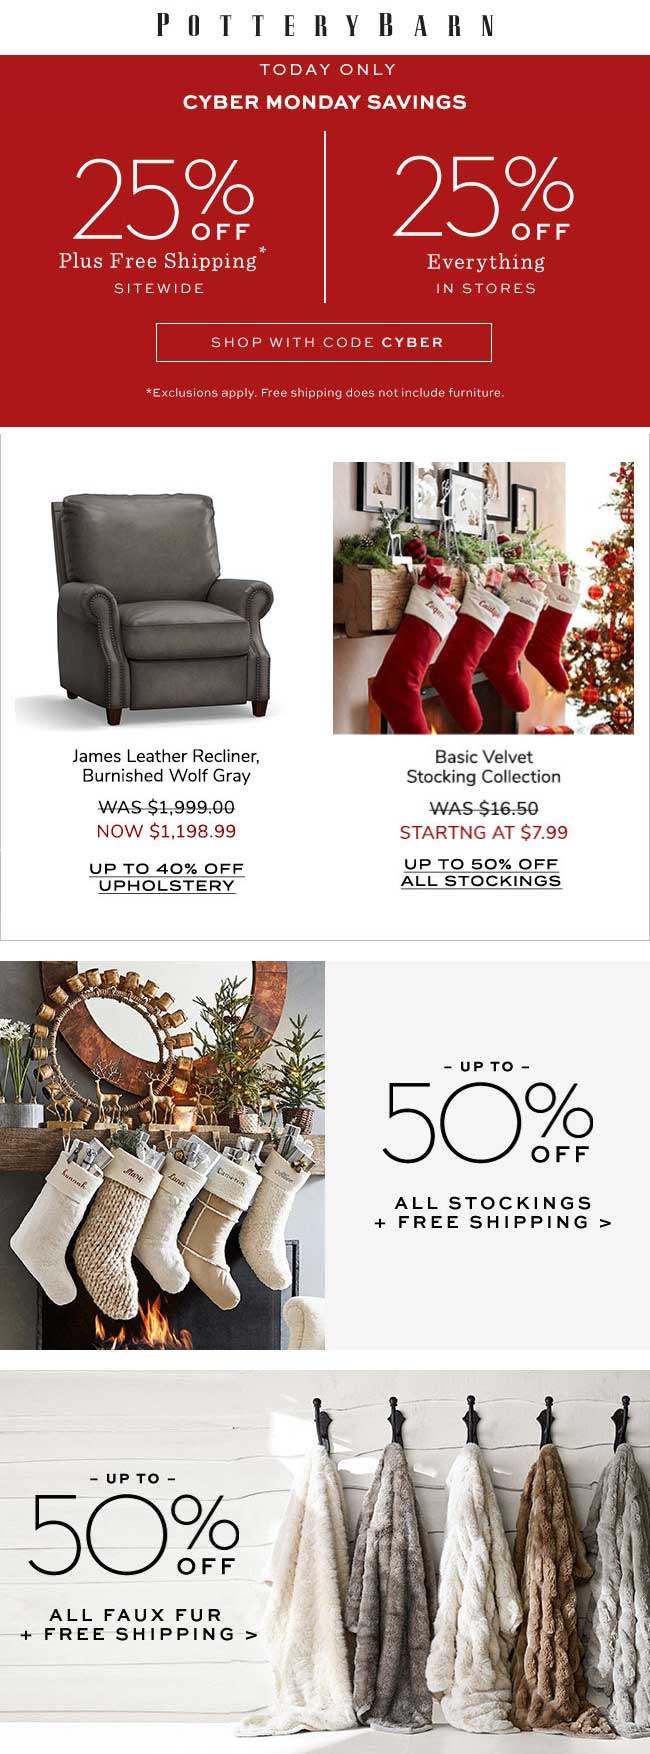 Pottery Barn Coupon July 2019 25% off everything today at Pottery Barn, or online via promo code CYBER